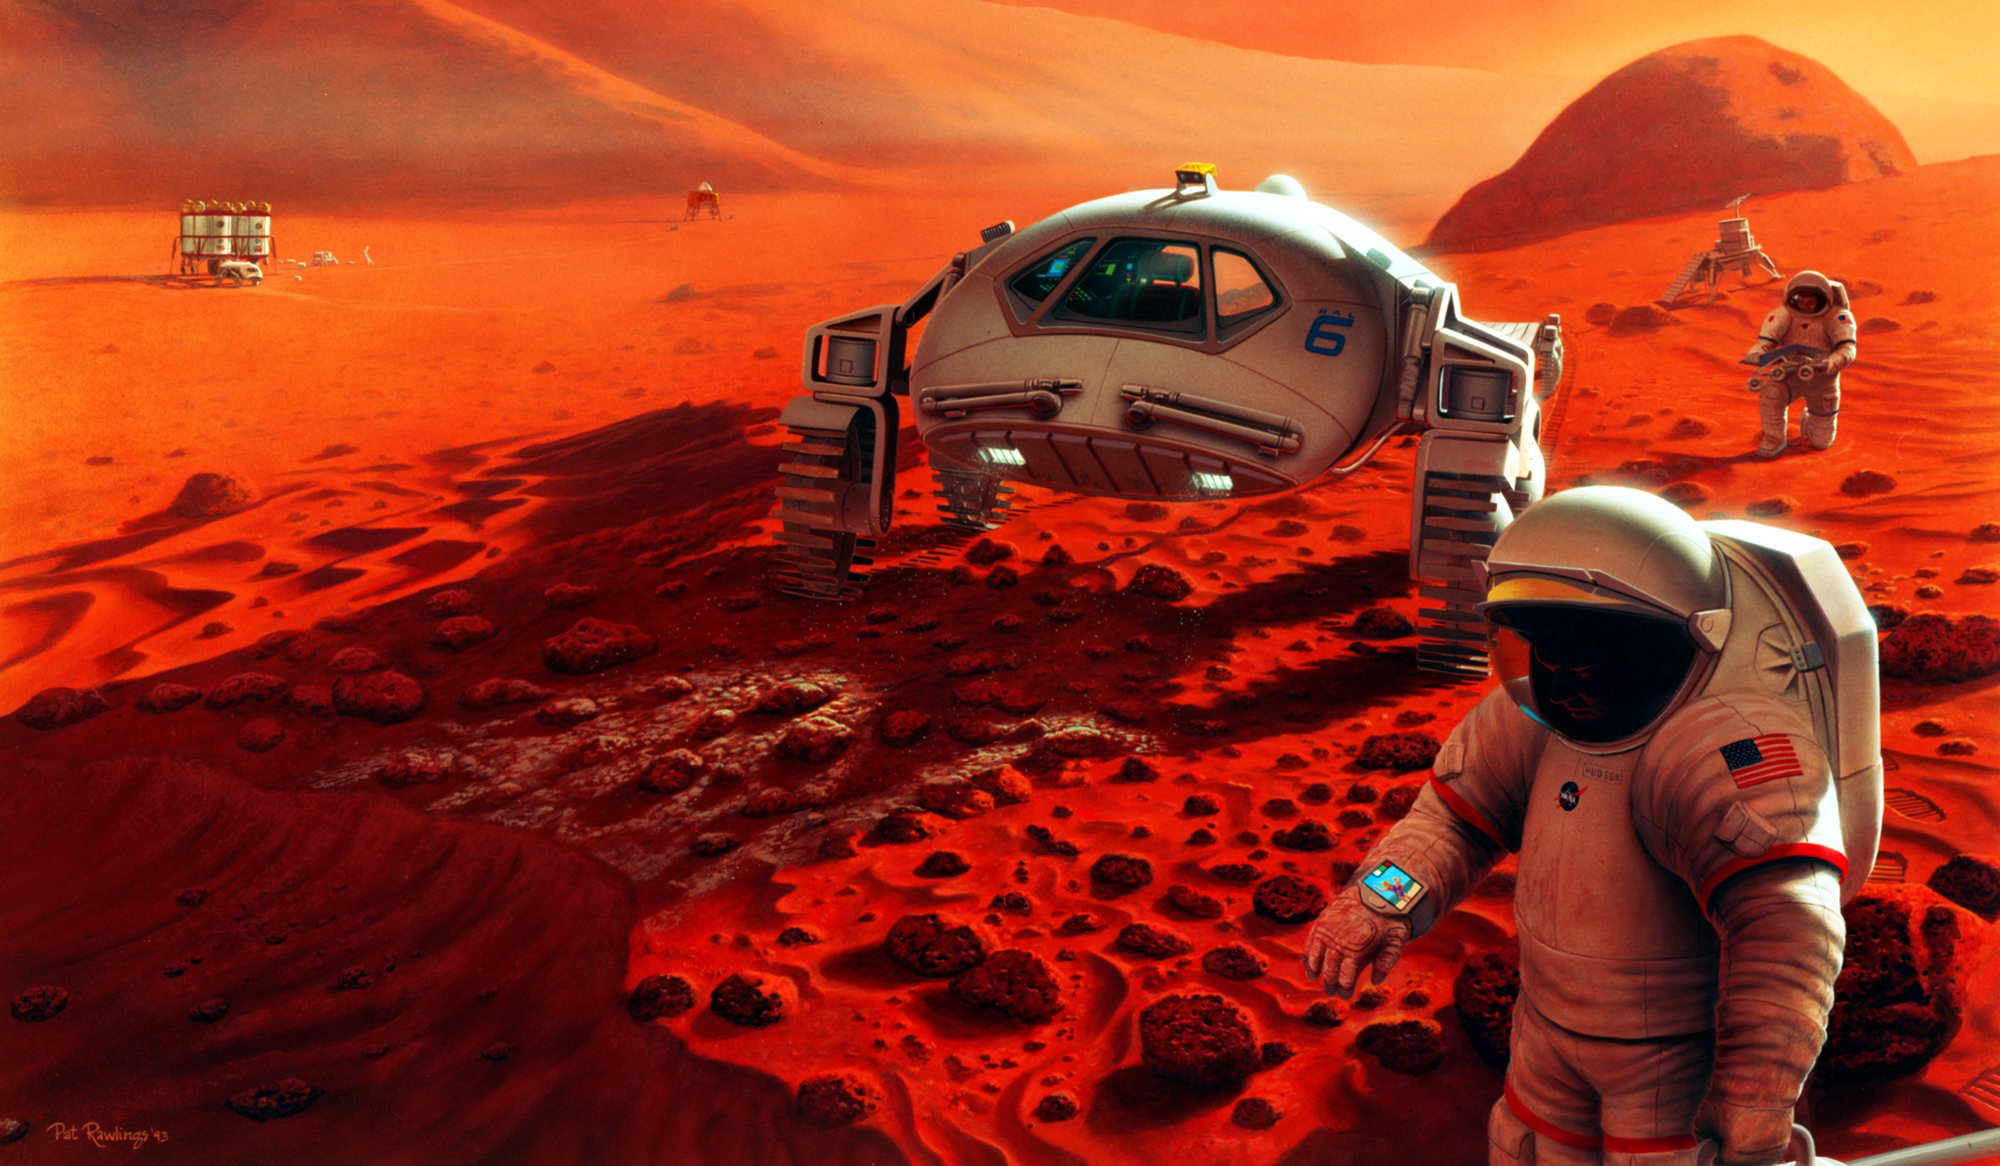 nasa mars art manned mission - Retro Gallery Archive (Full Size)